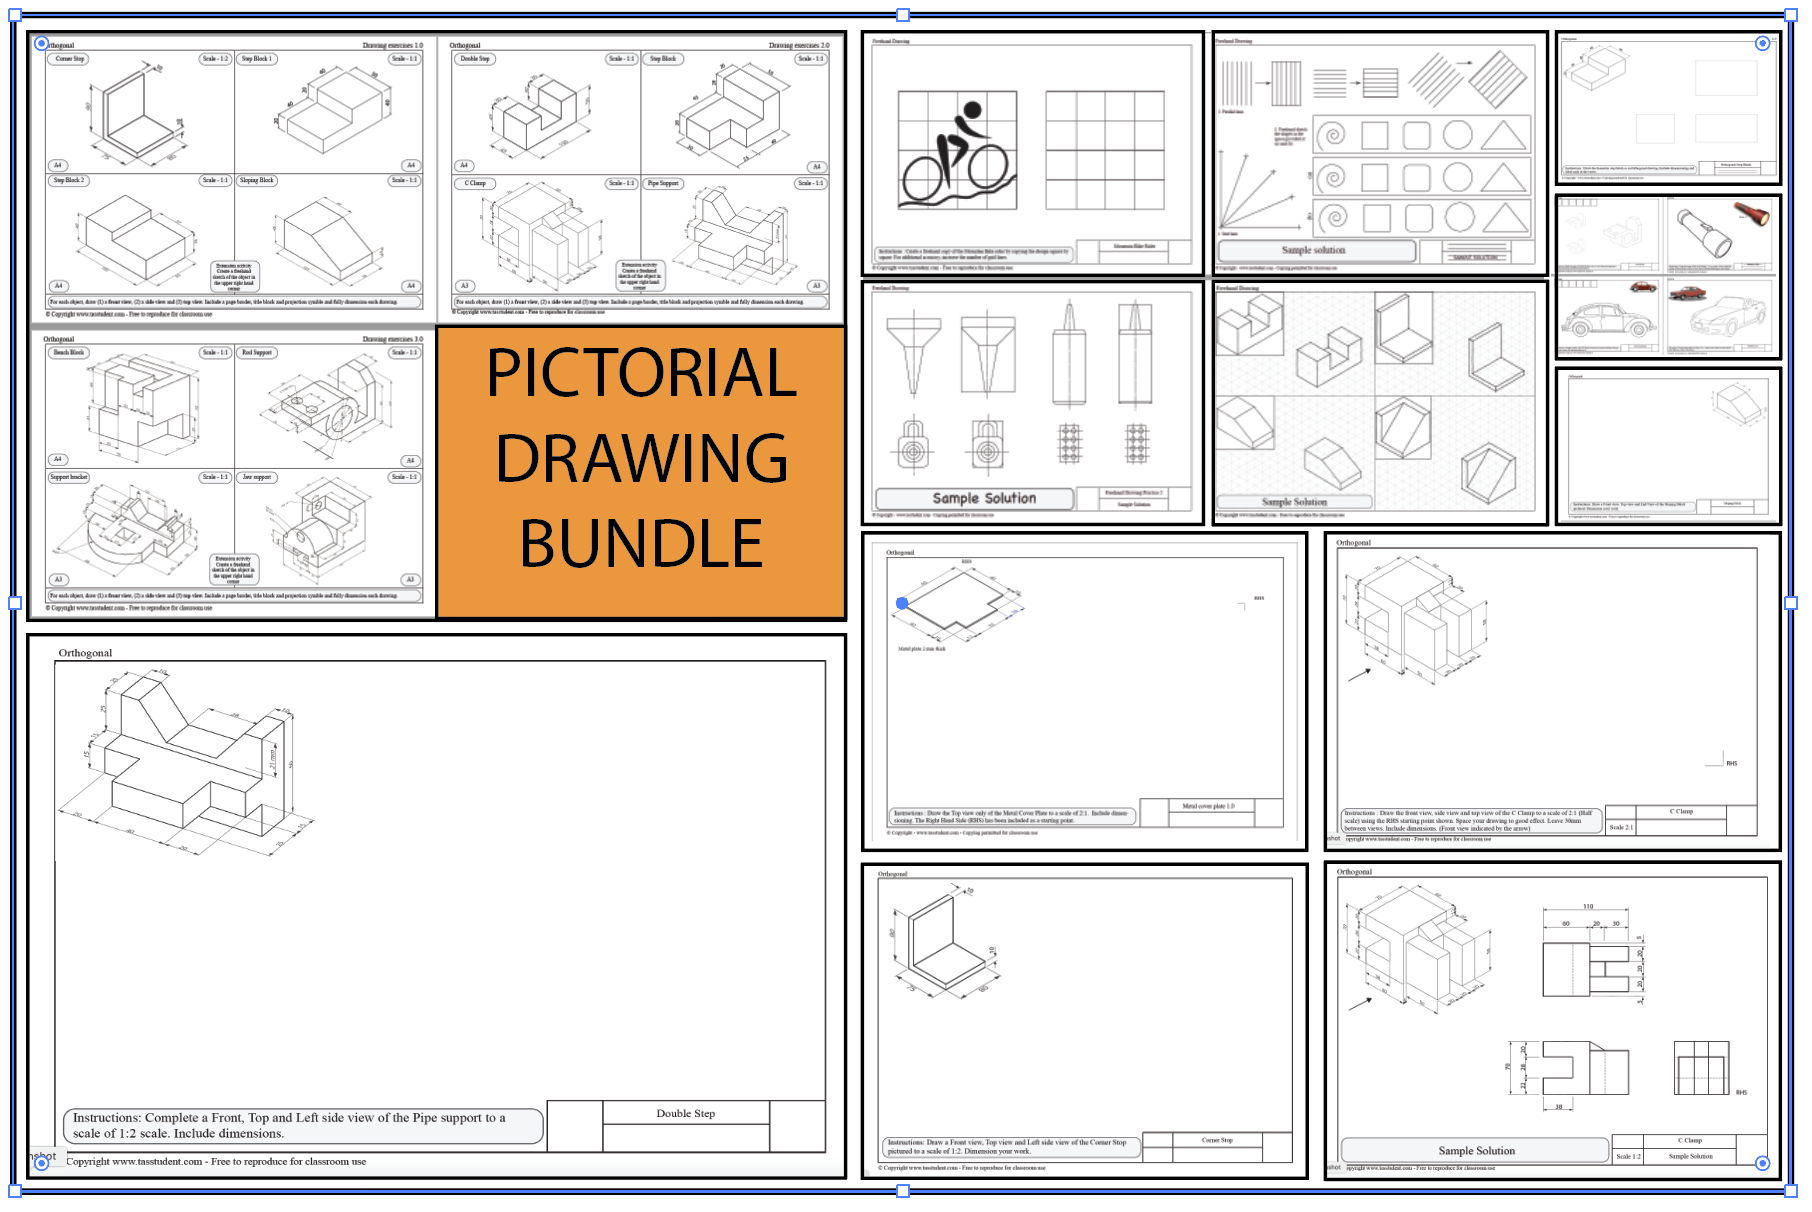 Pictorial Drawings Bundle